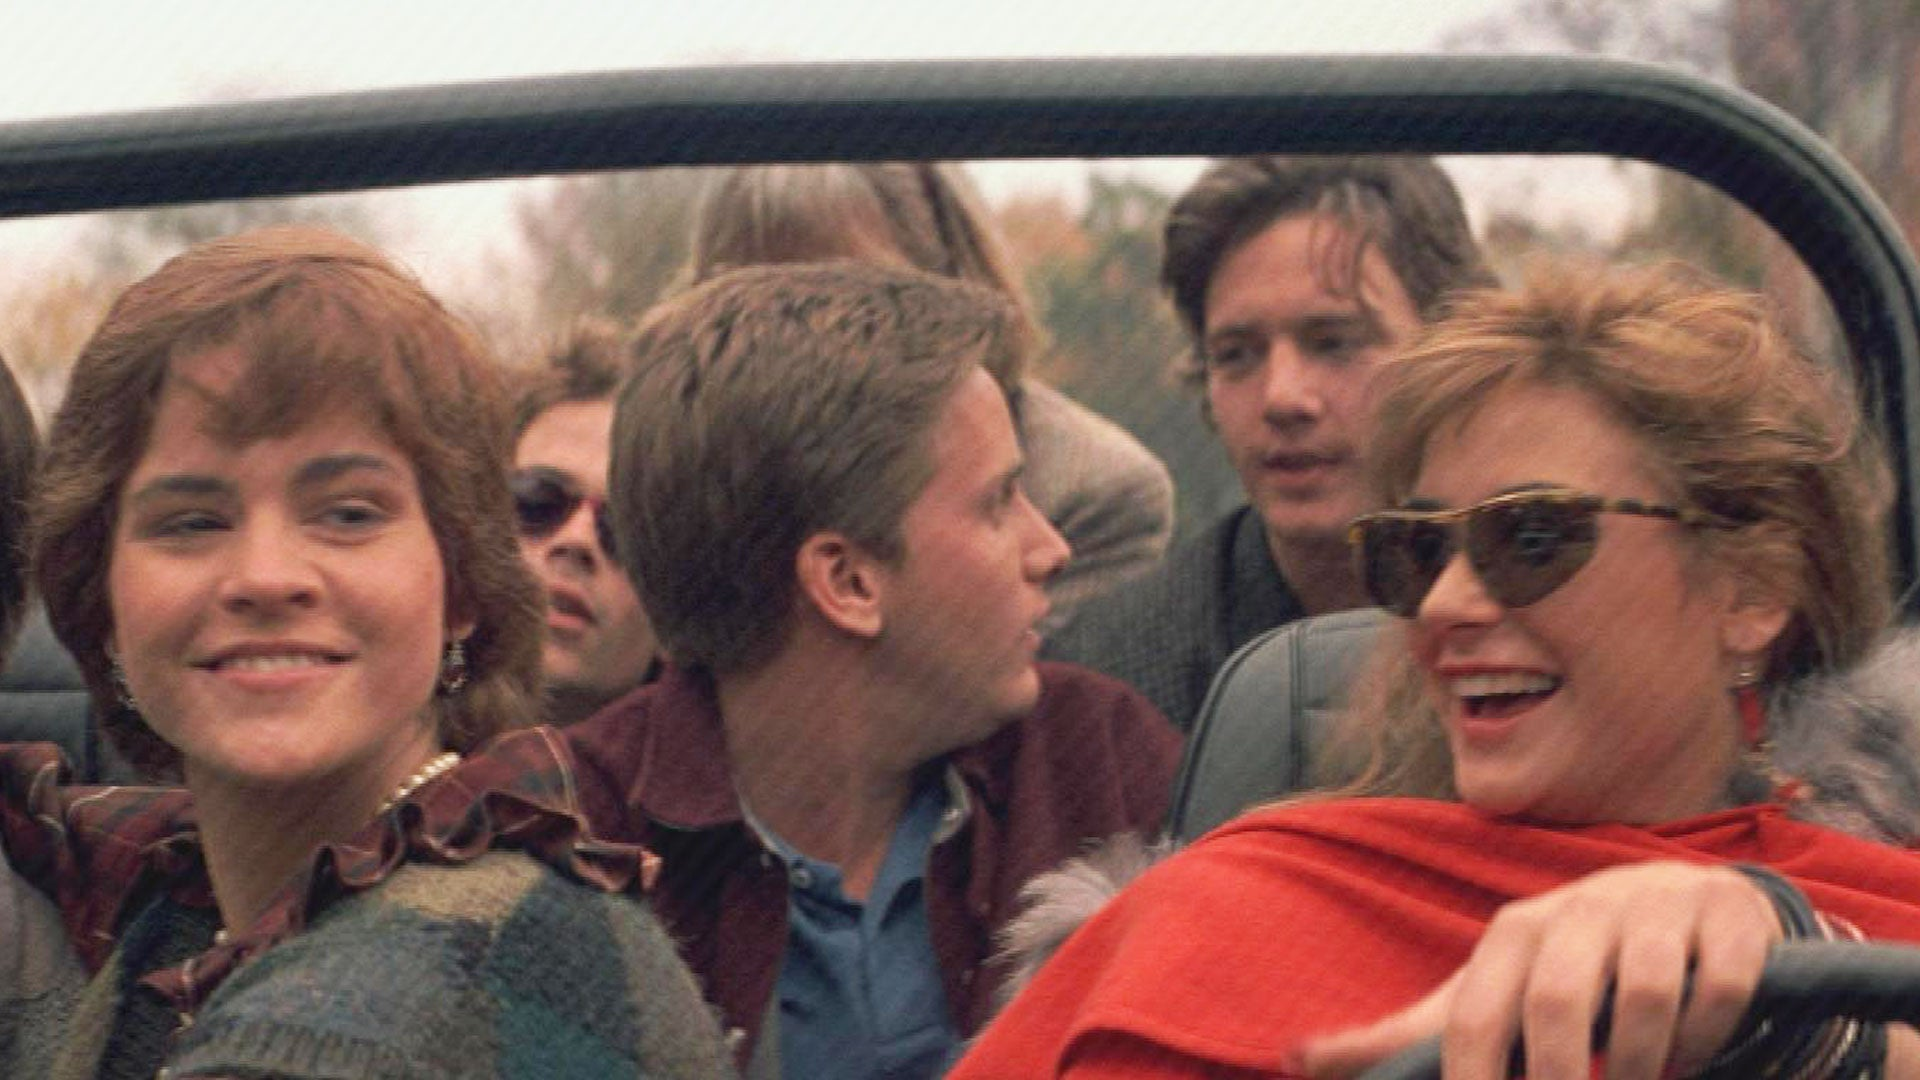 St Elmo S Fire Flashback See The Brat Pack On Set Of The 1985 Classic